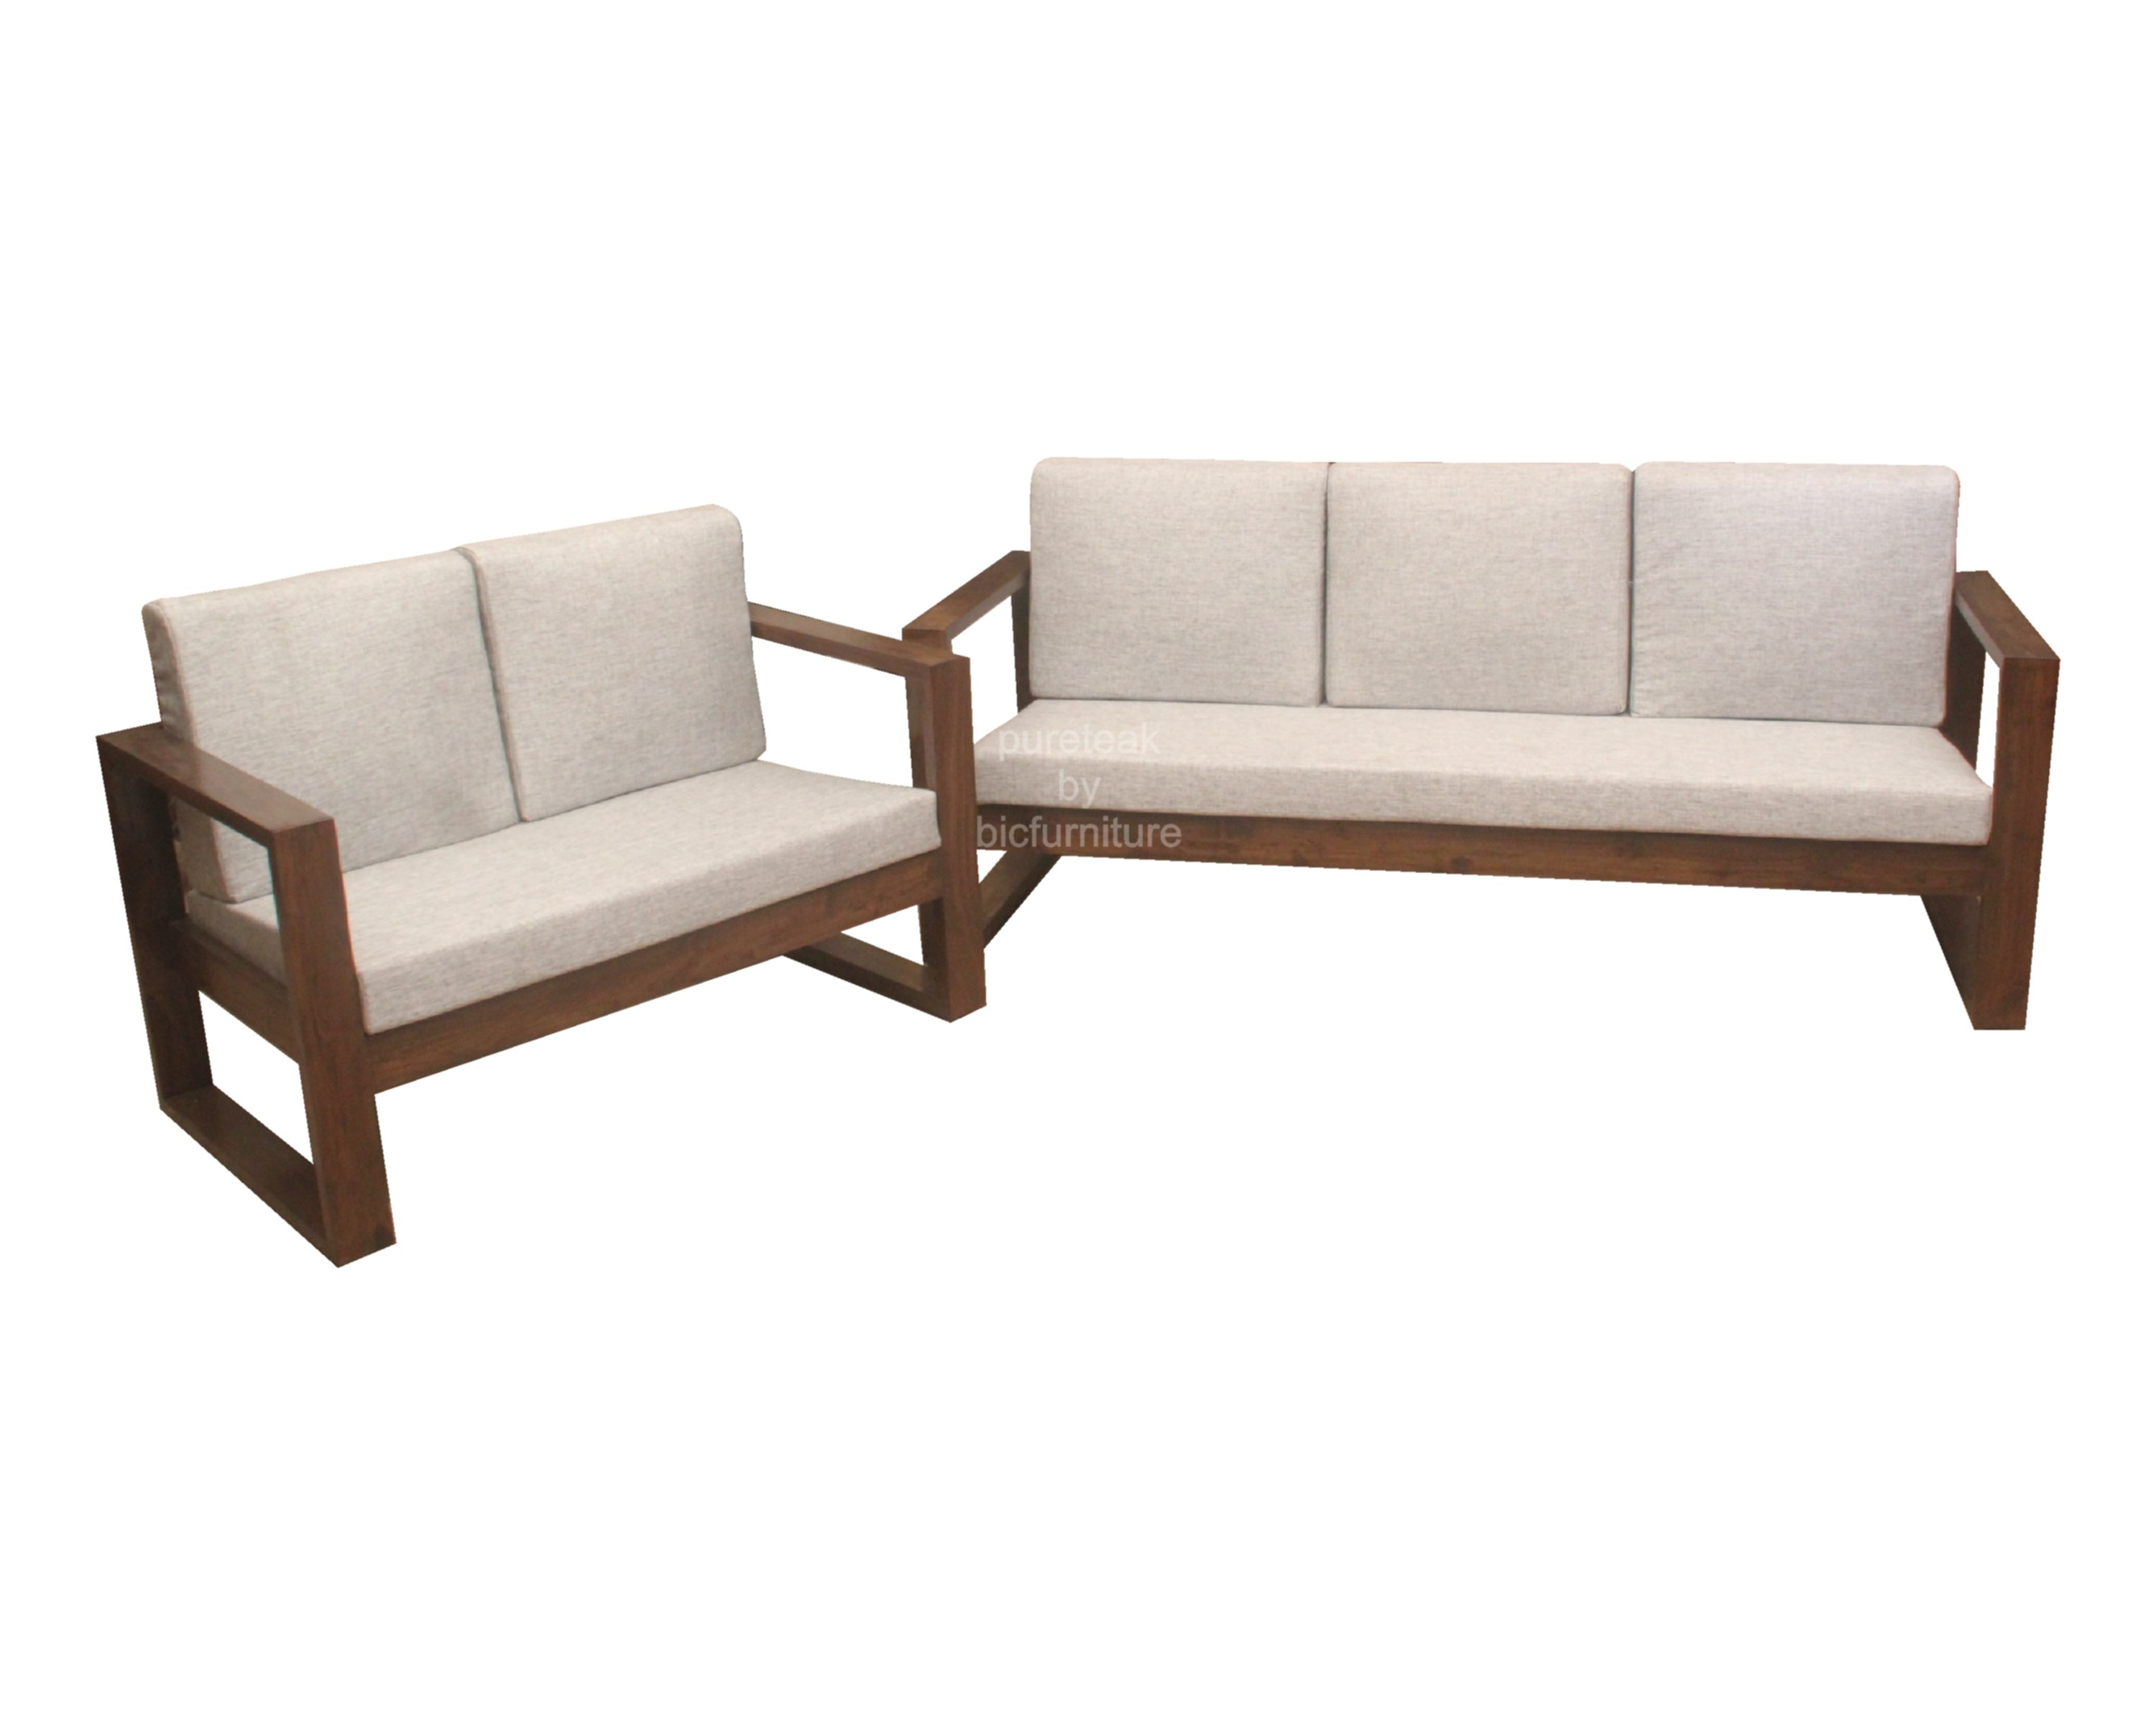 http://bicfurniture.com/wp-content/uploads/2015/12/Teak_Wood_Sofa_Set_In_Modern_Style.jpg